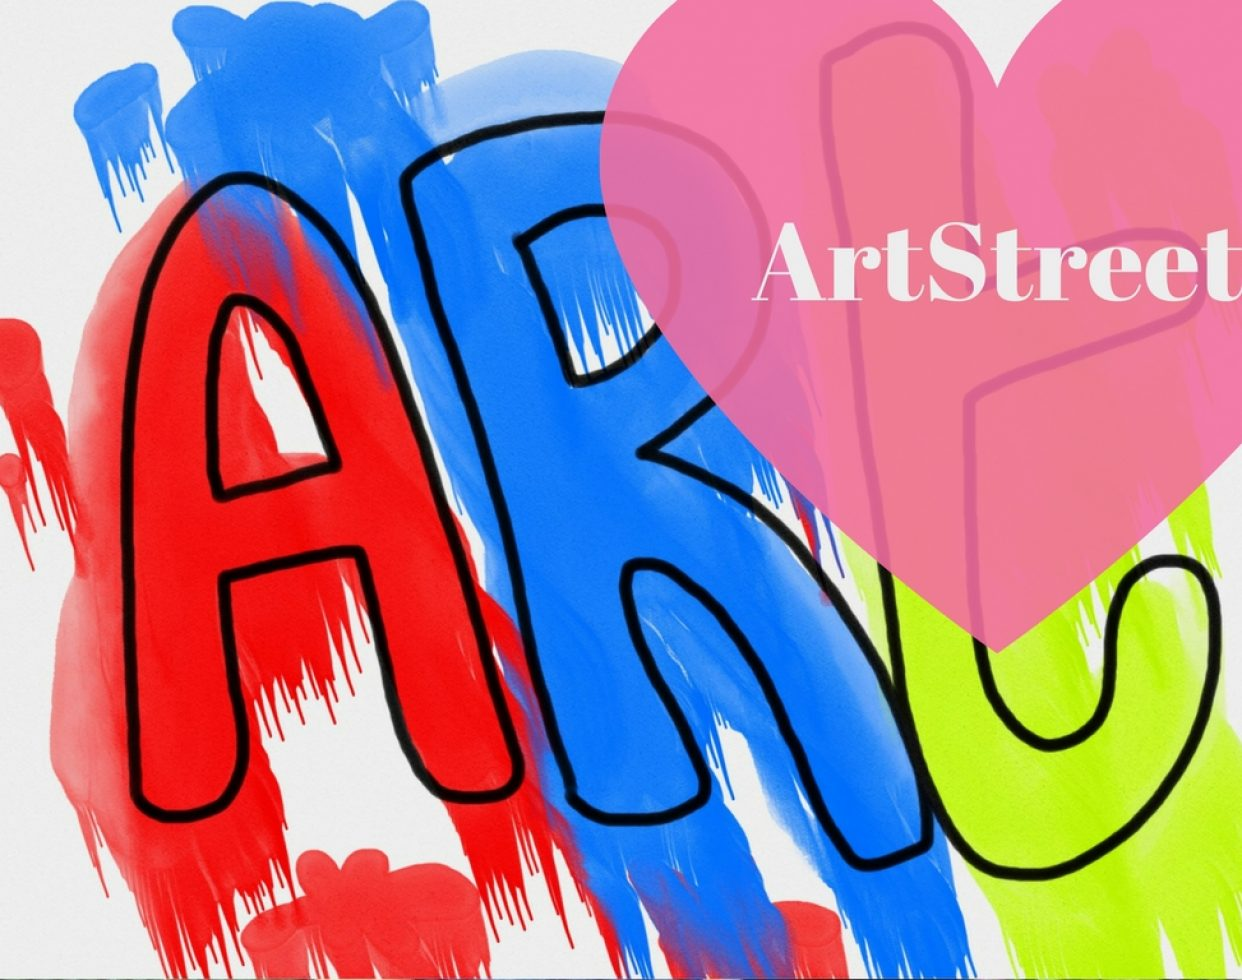 The group that brought Art Hotel is back again with ArtStreet, a temporary public art installation of visual and performing arts. The event is free and open to the public from February 3 to 25 at a warehouse on 300 1st Ave.  (Photo: Dawn Hudson // PublicDomainPictures.net)